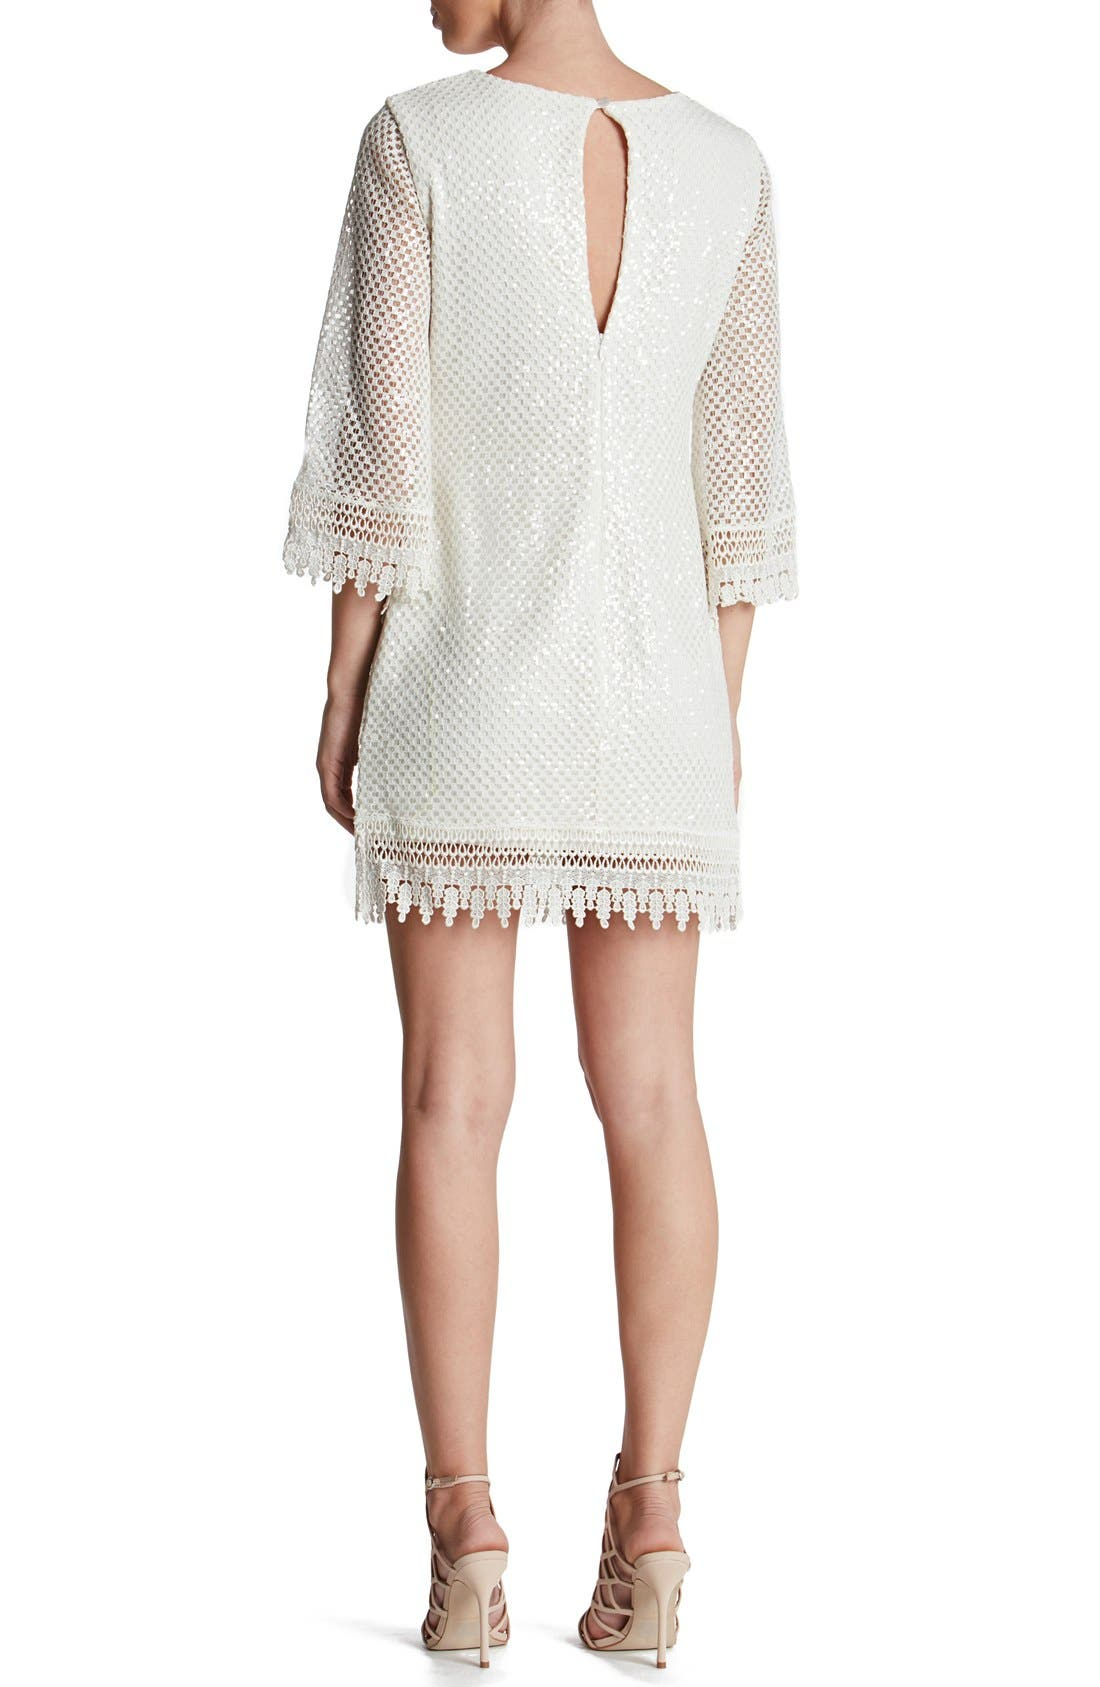 'Phoebe' Sequin Crochet Shift Dress,                             Alternate thumbnail 2, color,                             White